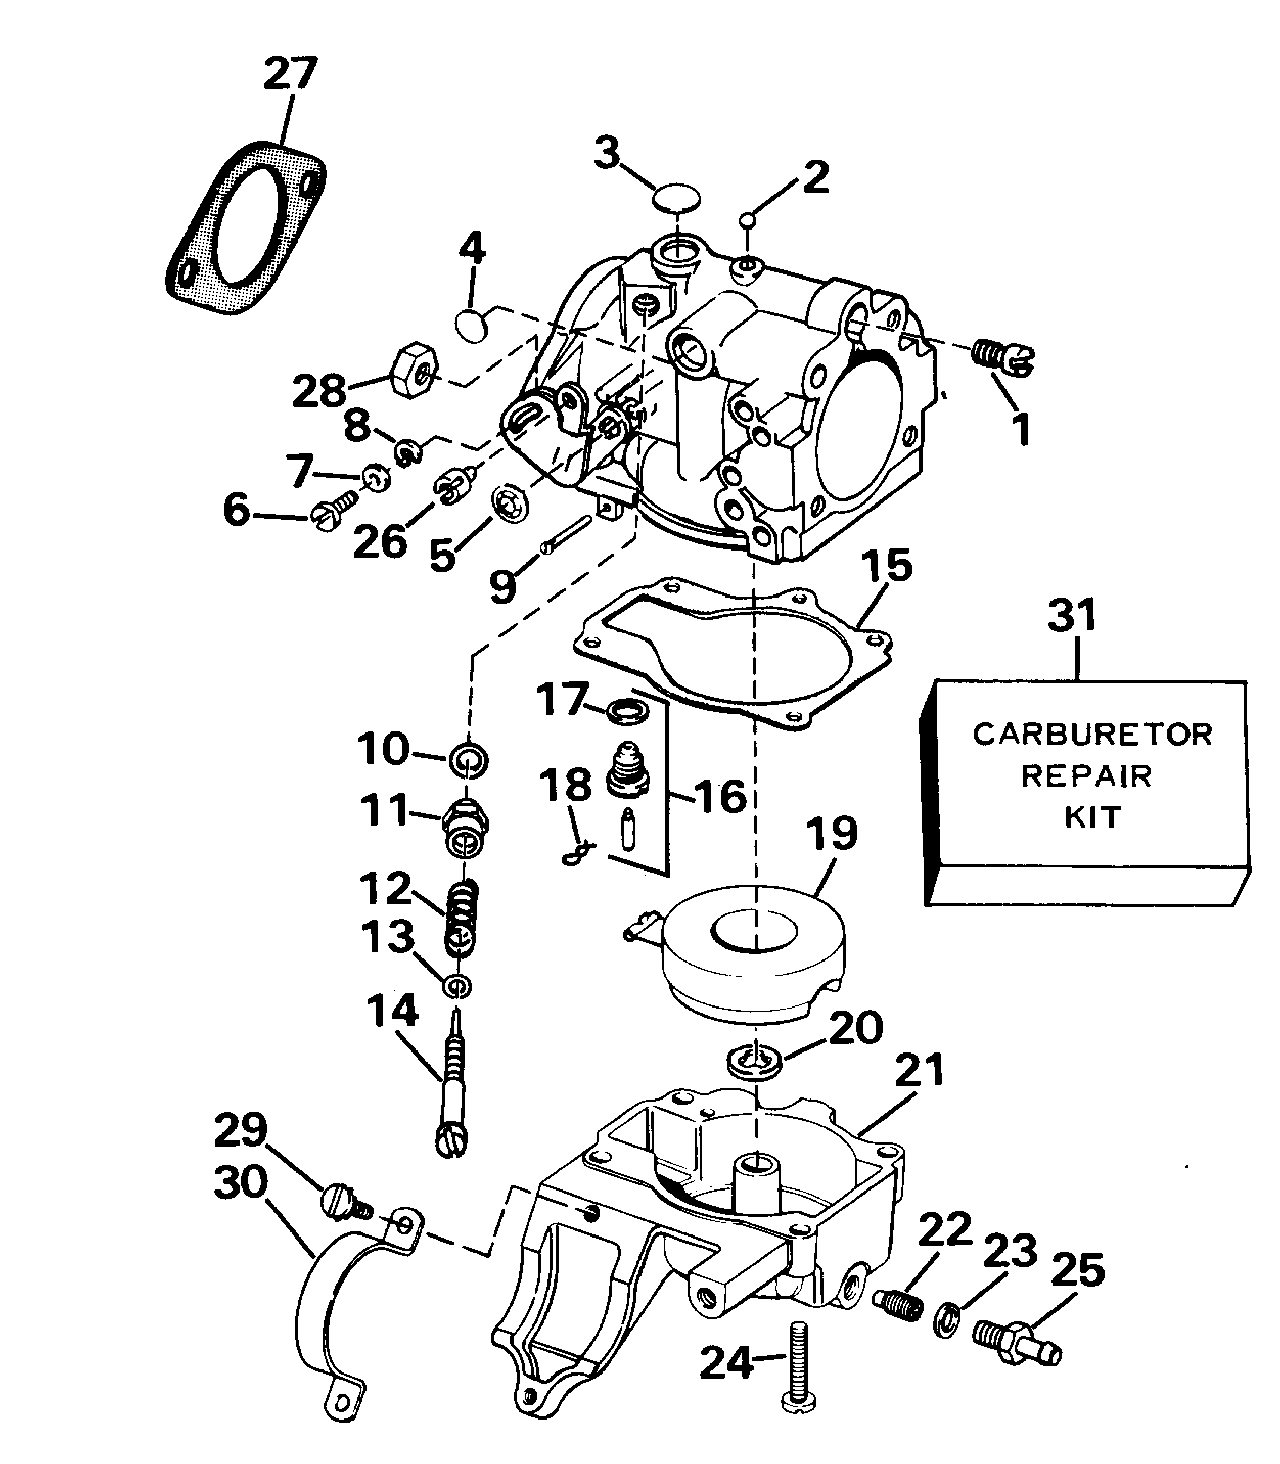 30 Hp Evinrude Wiring Diagram Expert Schematics Diagrams Online Johnson Outboard Motor Carburetor Problems Caferacers Com Troubleshooting Guide